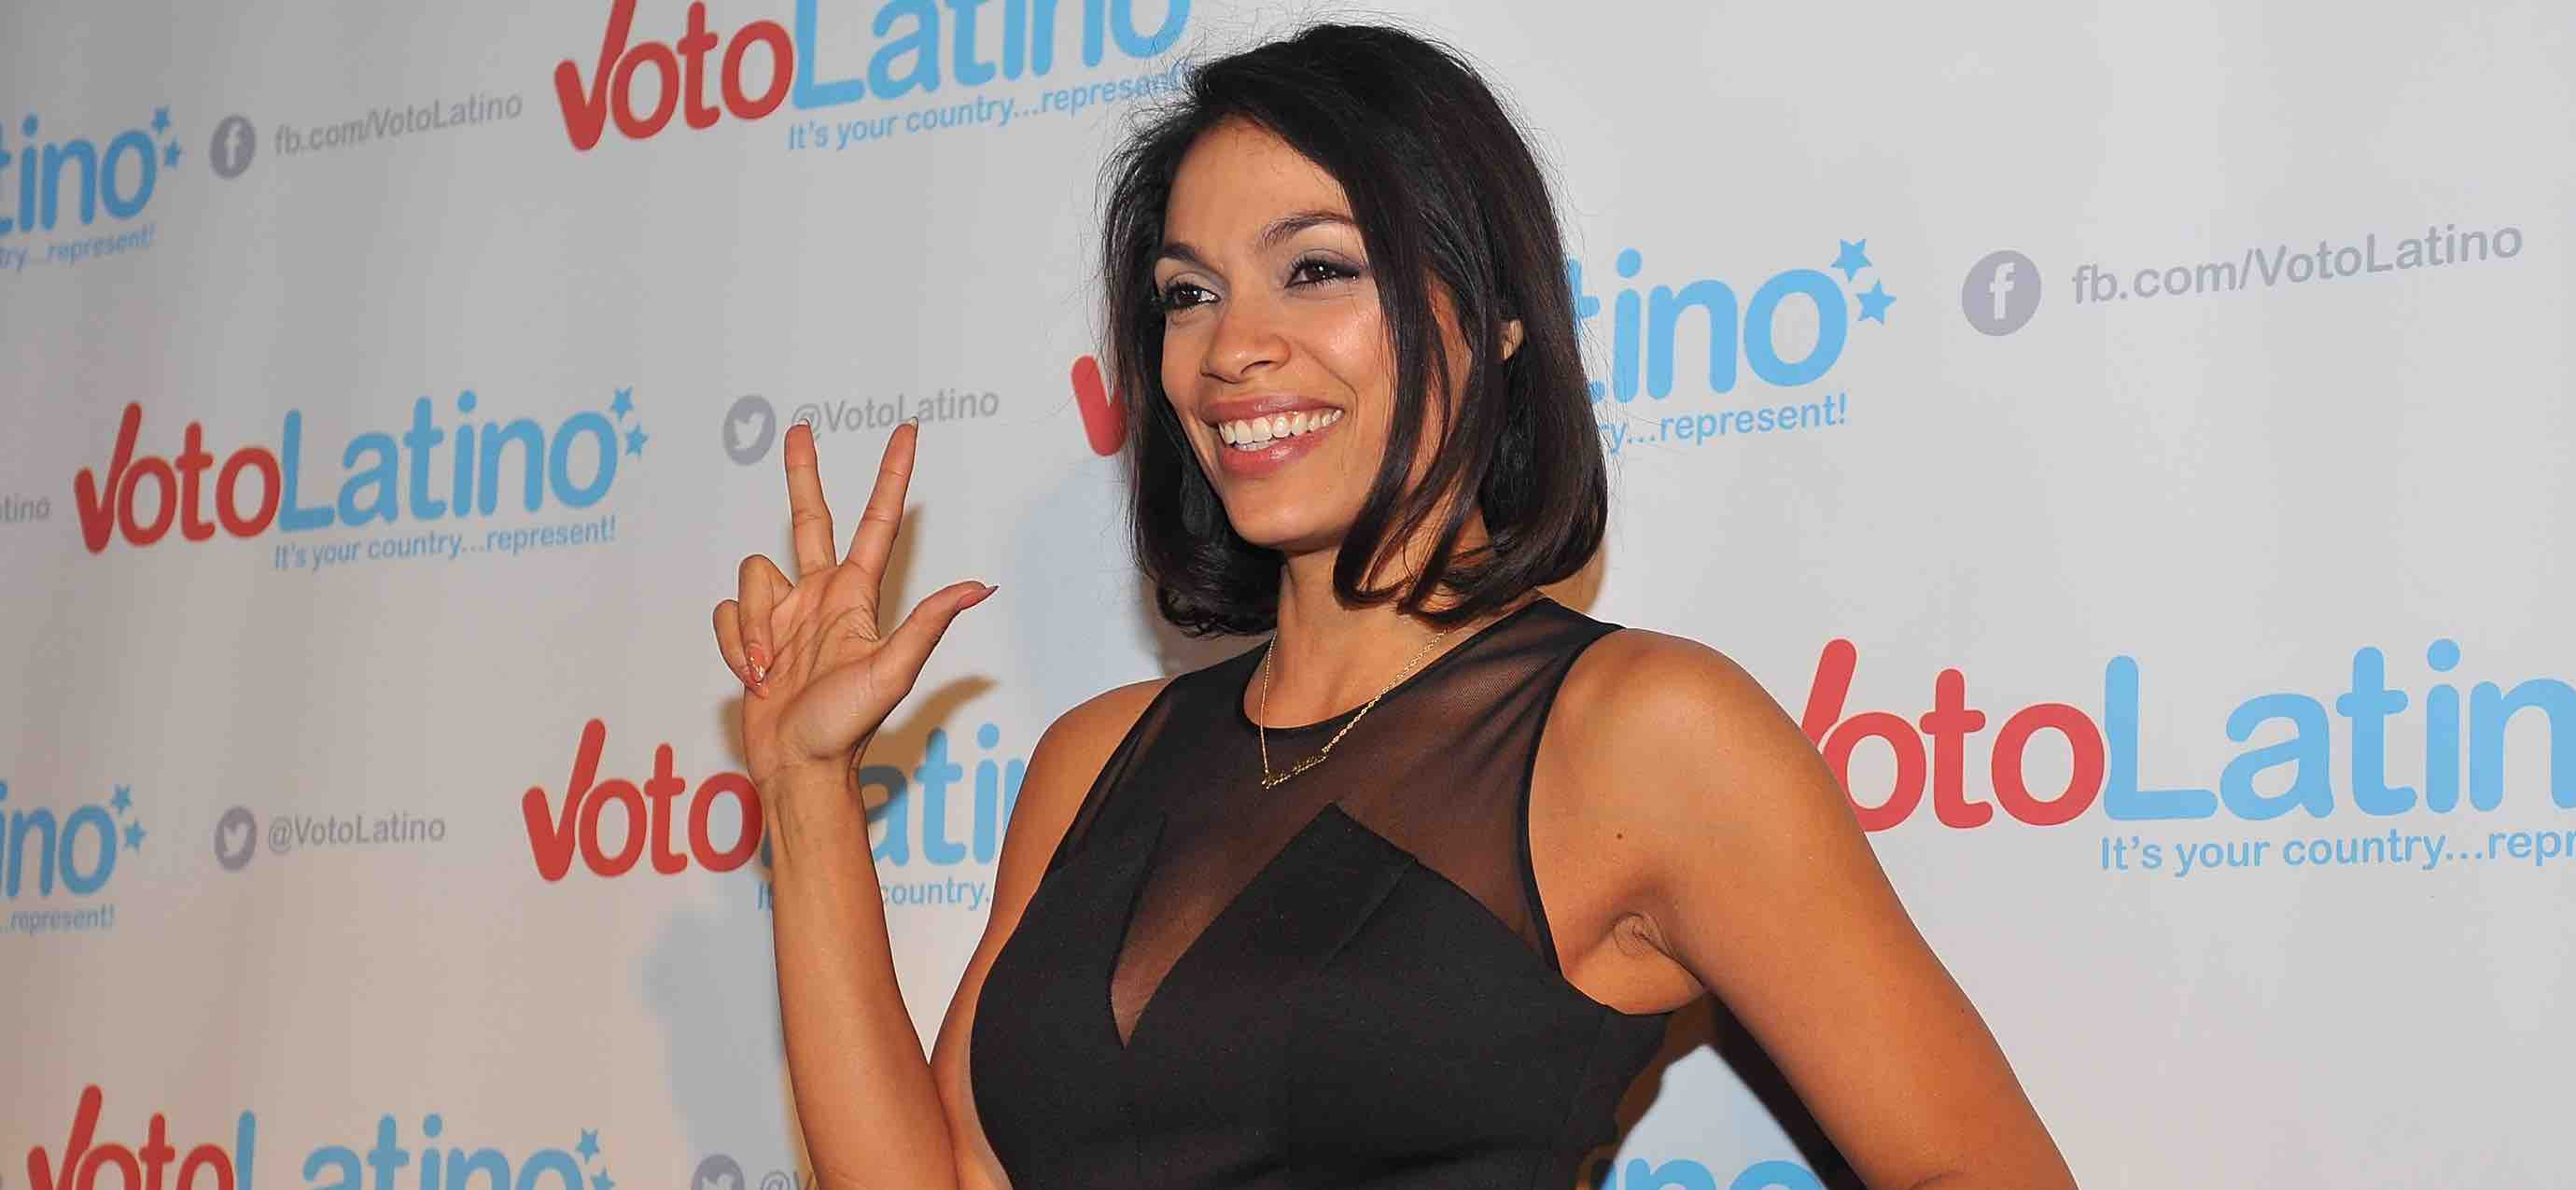 Here Are the Messages Latino Celebrities Are Sending on Election Day